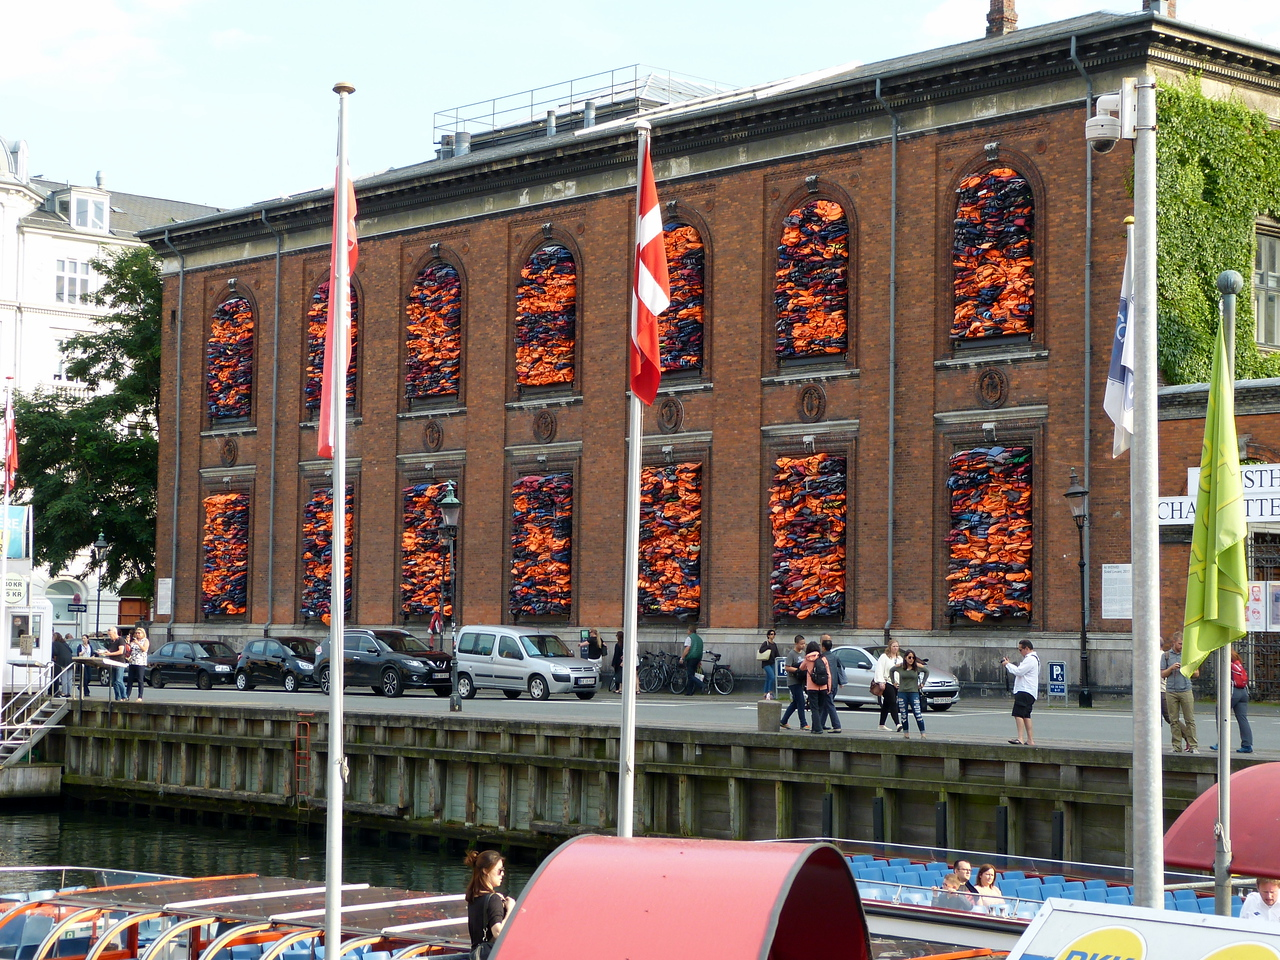 Much of Artist, Ai Weiwei's recent work, apart from fighting Lego censorship, has involved collecting things left behind by refugees. In his latest large-scale installation, Soleil Levant, Weiwei collected more than 3,500 life jackets salvaged from refugees who arrived at the Greek island of Lesbos, and stuffed them into the giant windows of the Copenhagen art museum Kunsthal Charlottenborg.  Weiwei unveiled Soleil Levant on June 20th, which is the United Nations World Refugee Day.